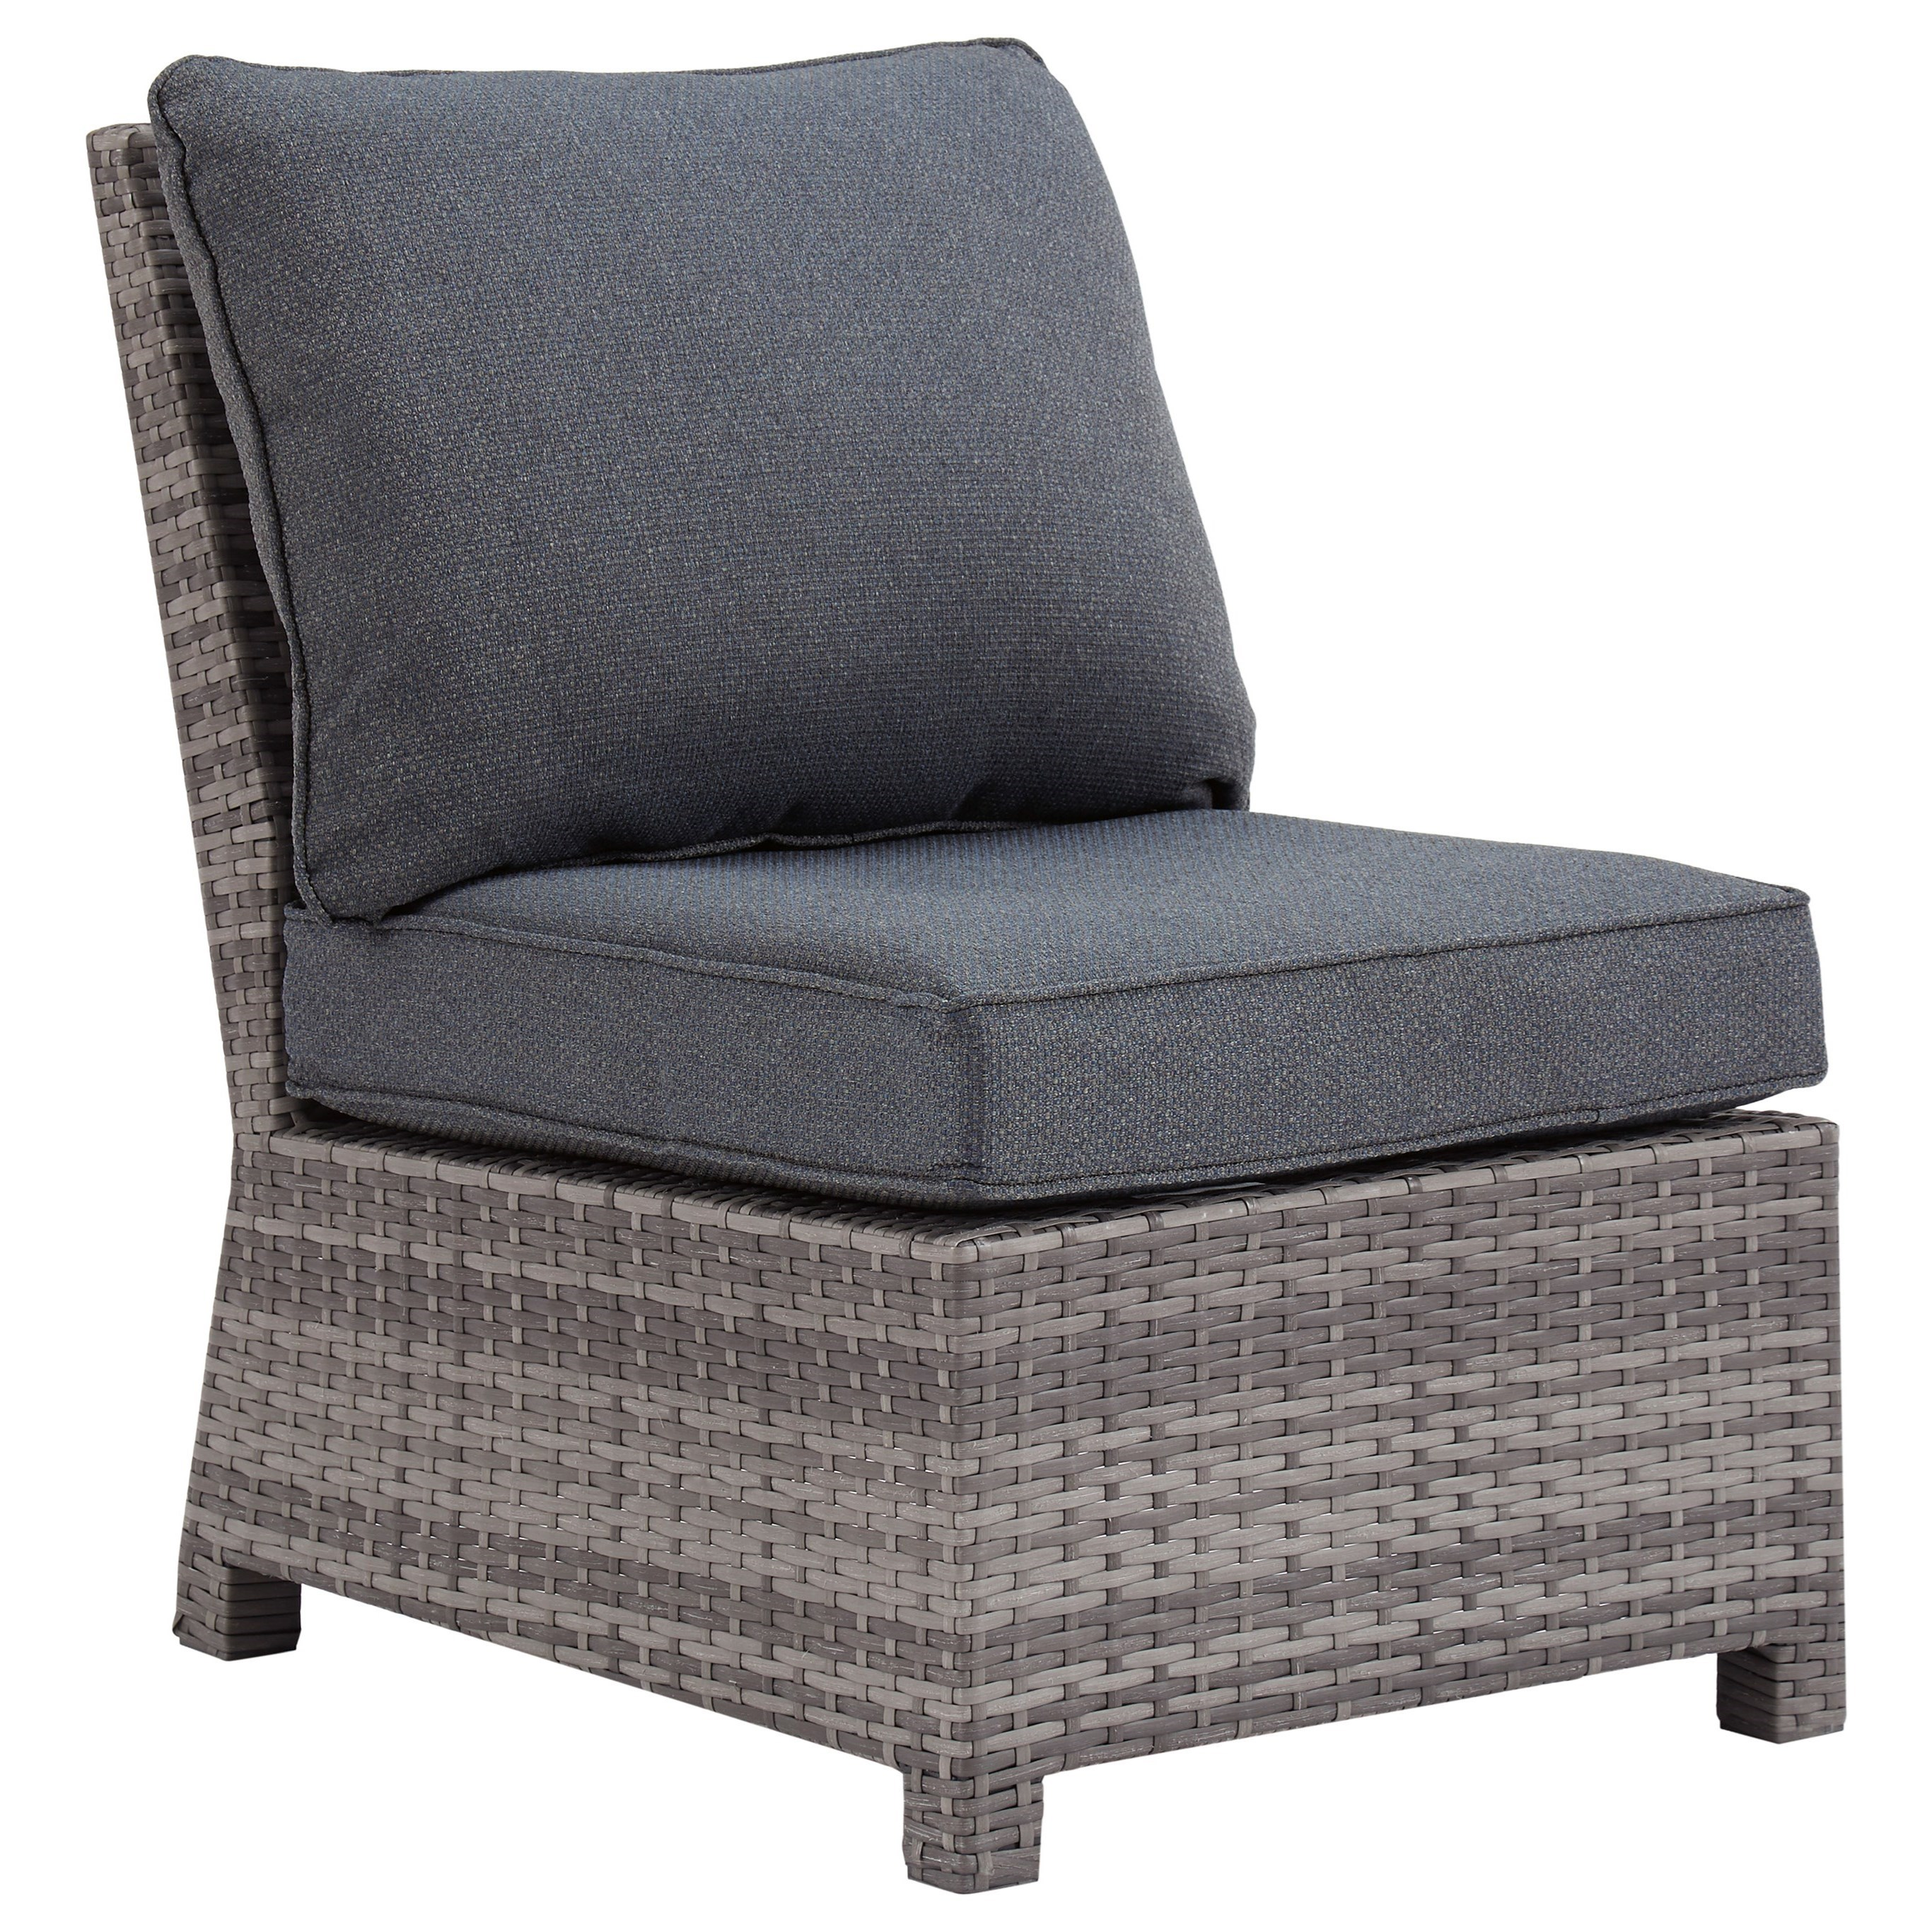 Salem Beach Armless Chair with Cushion by Signature Design by Ashley at Northeast Factory Direct